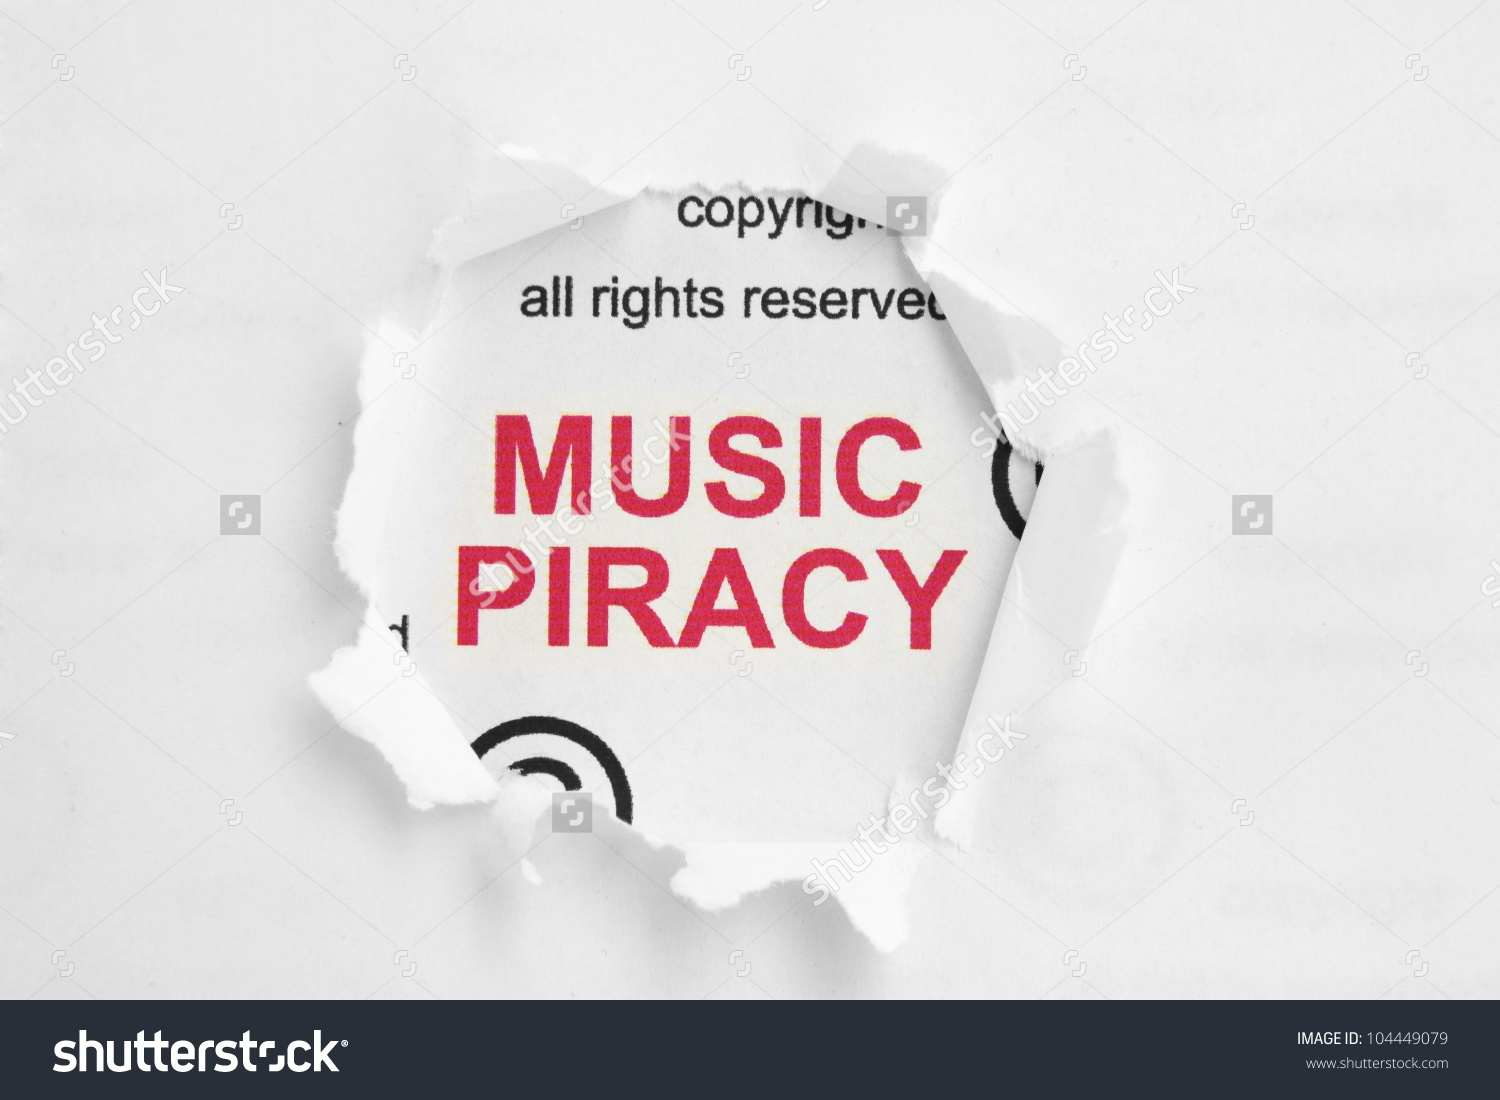 essay on music piracy Online music piracy this essay online music piracy and other 63,000+ term papers, college essay examples and free essays are available now on reviewessayscom.